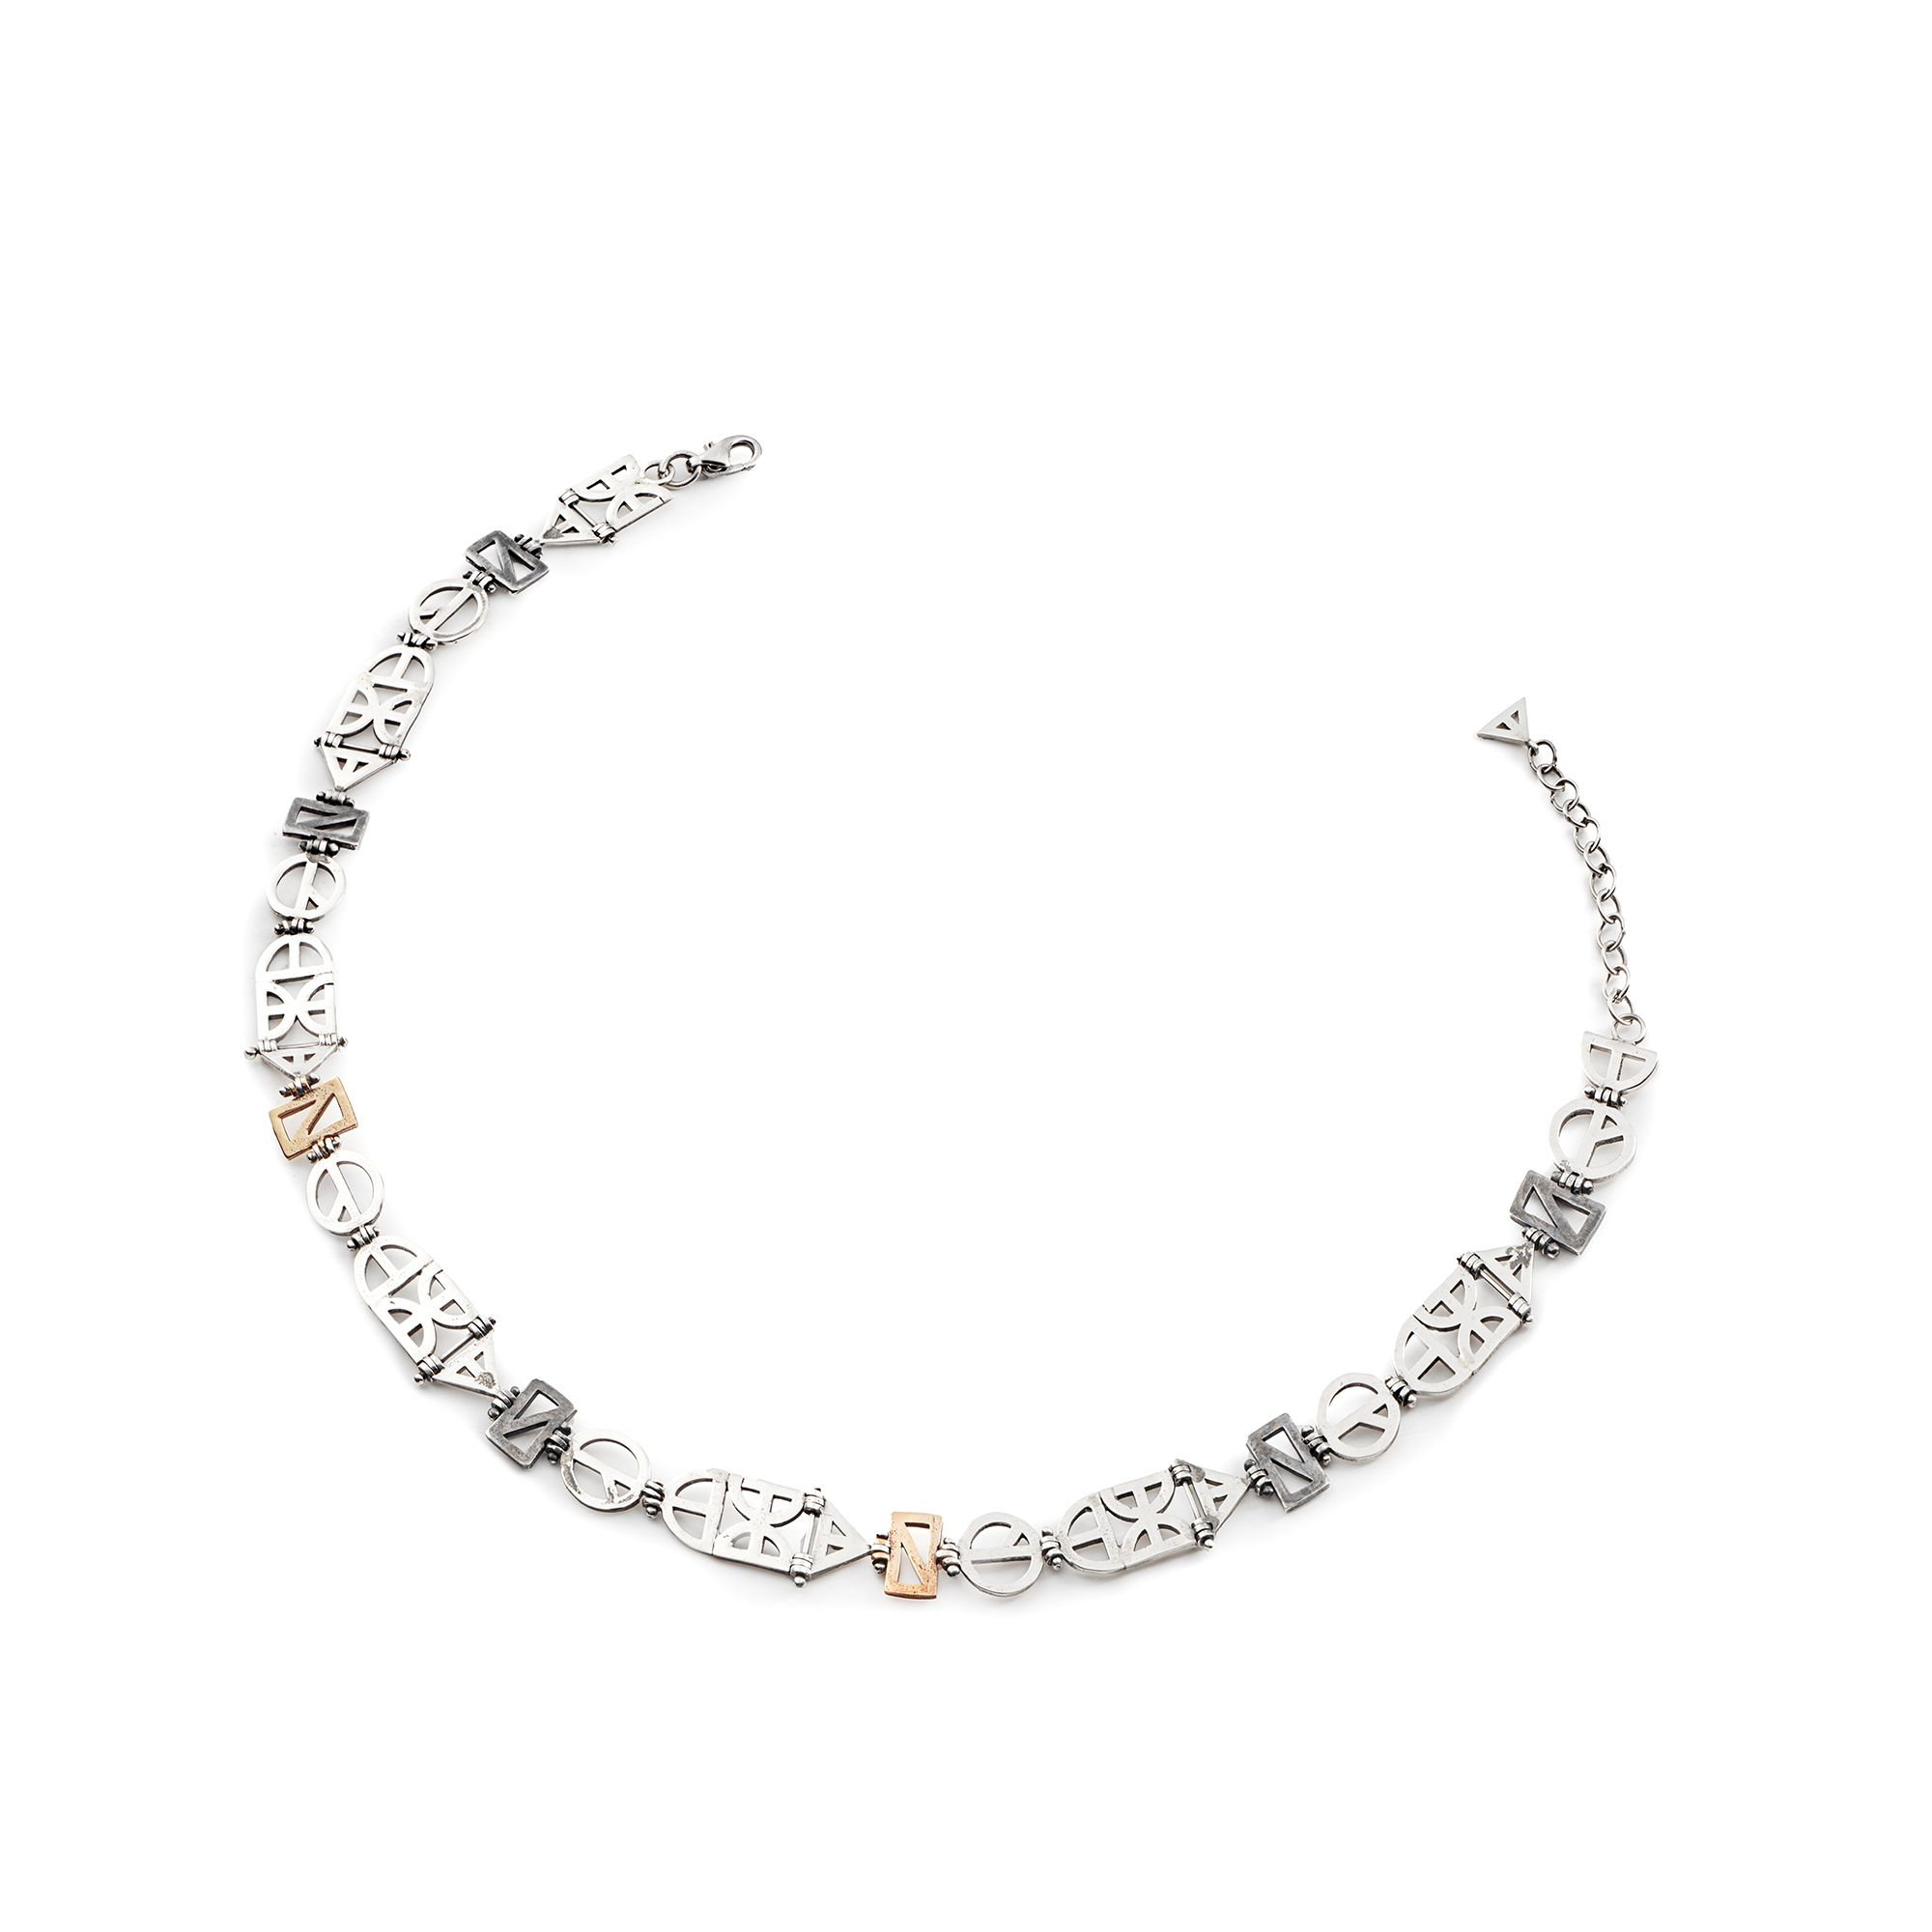 Origami Choker Neck string necklace in silver, rhodium silver and bronze